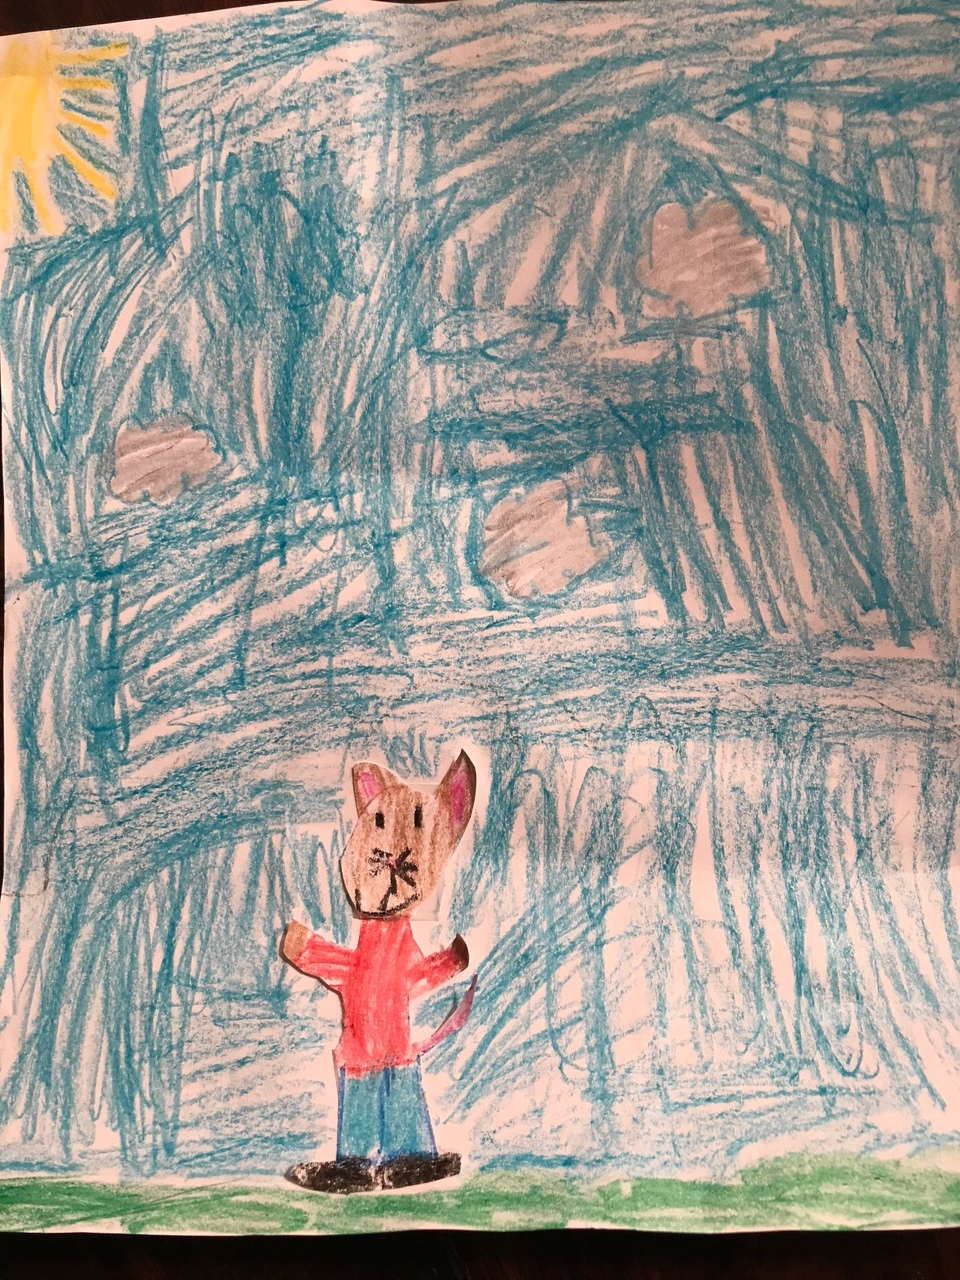 By Mary Ford, 2nd Grade